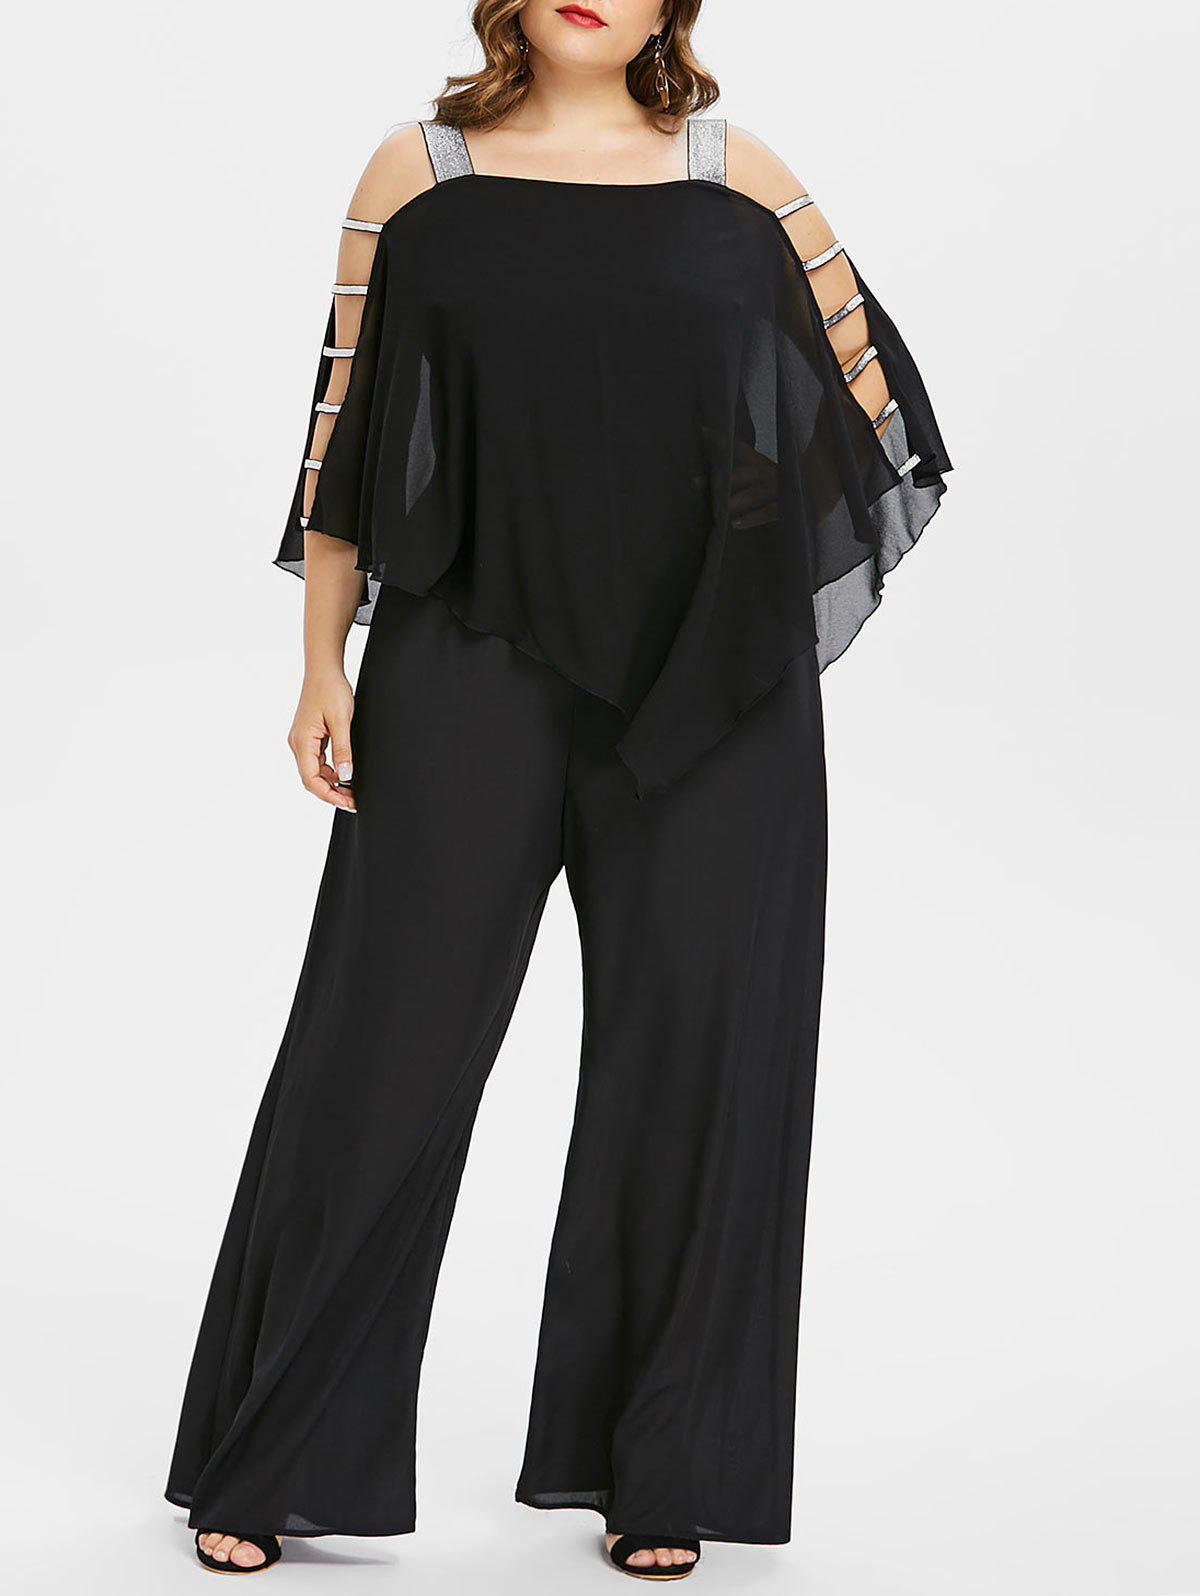 Discount Ladder Cut Out Plus Size Asymmetrical Jumpsuit